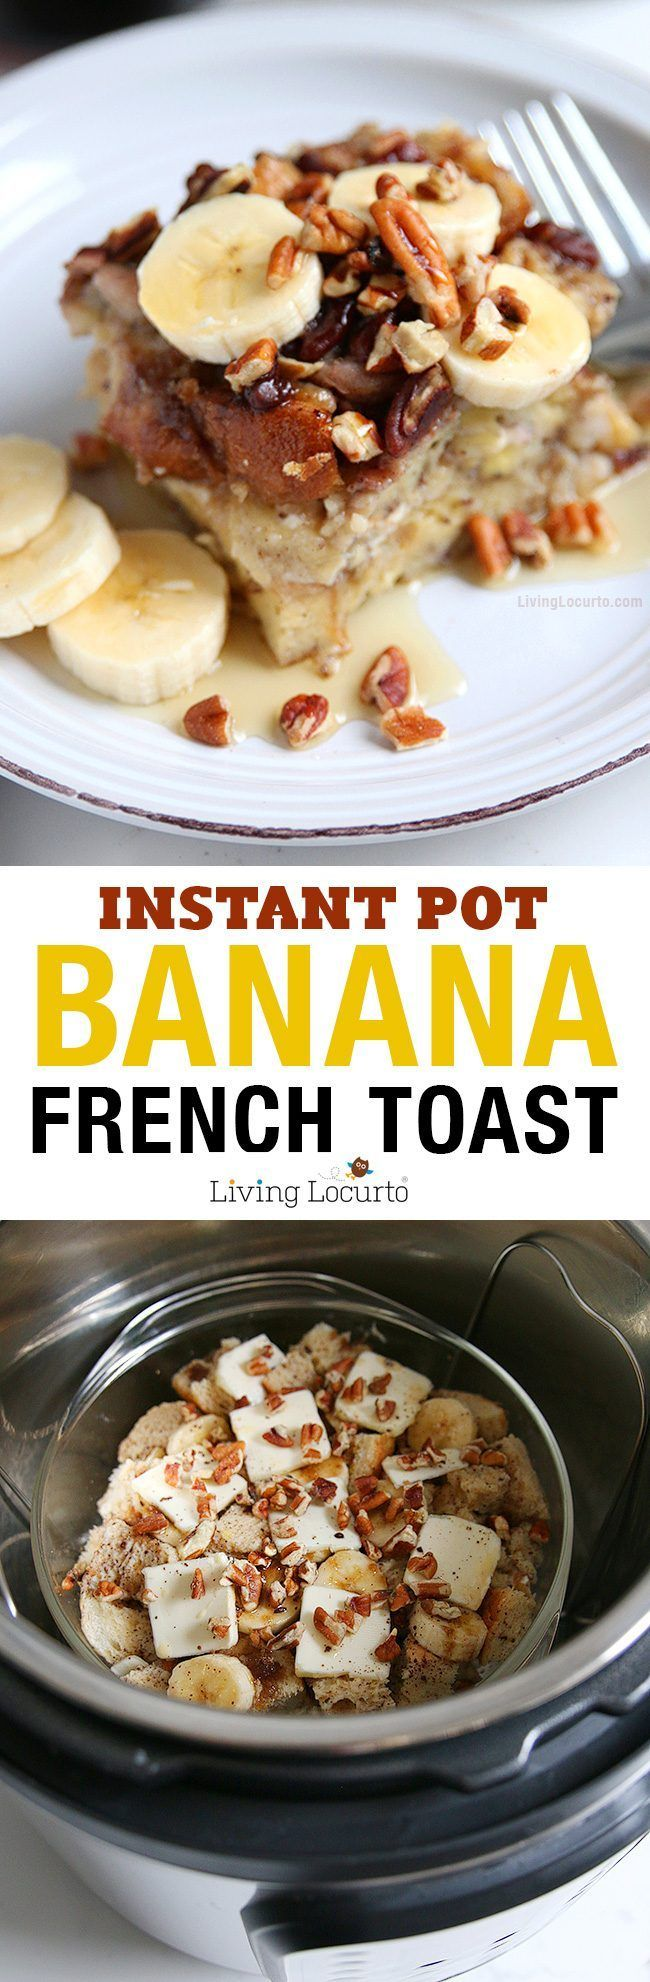 Easy One Pot Meal - Instant Pot Banana French Toast Recipe! How to make french toast in an Instant Pot! This easy Cream Cheese Banana French Toast Recipe is a fast way to make breakfast in a pressure cooker.